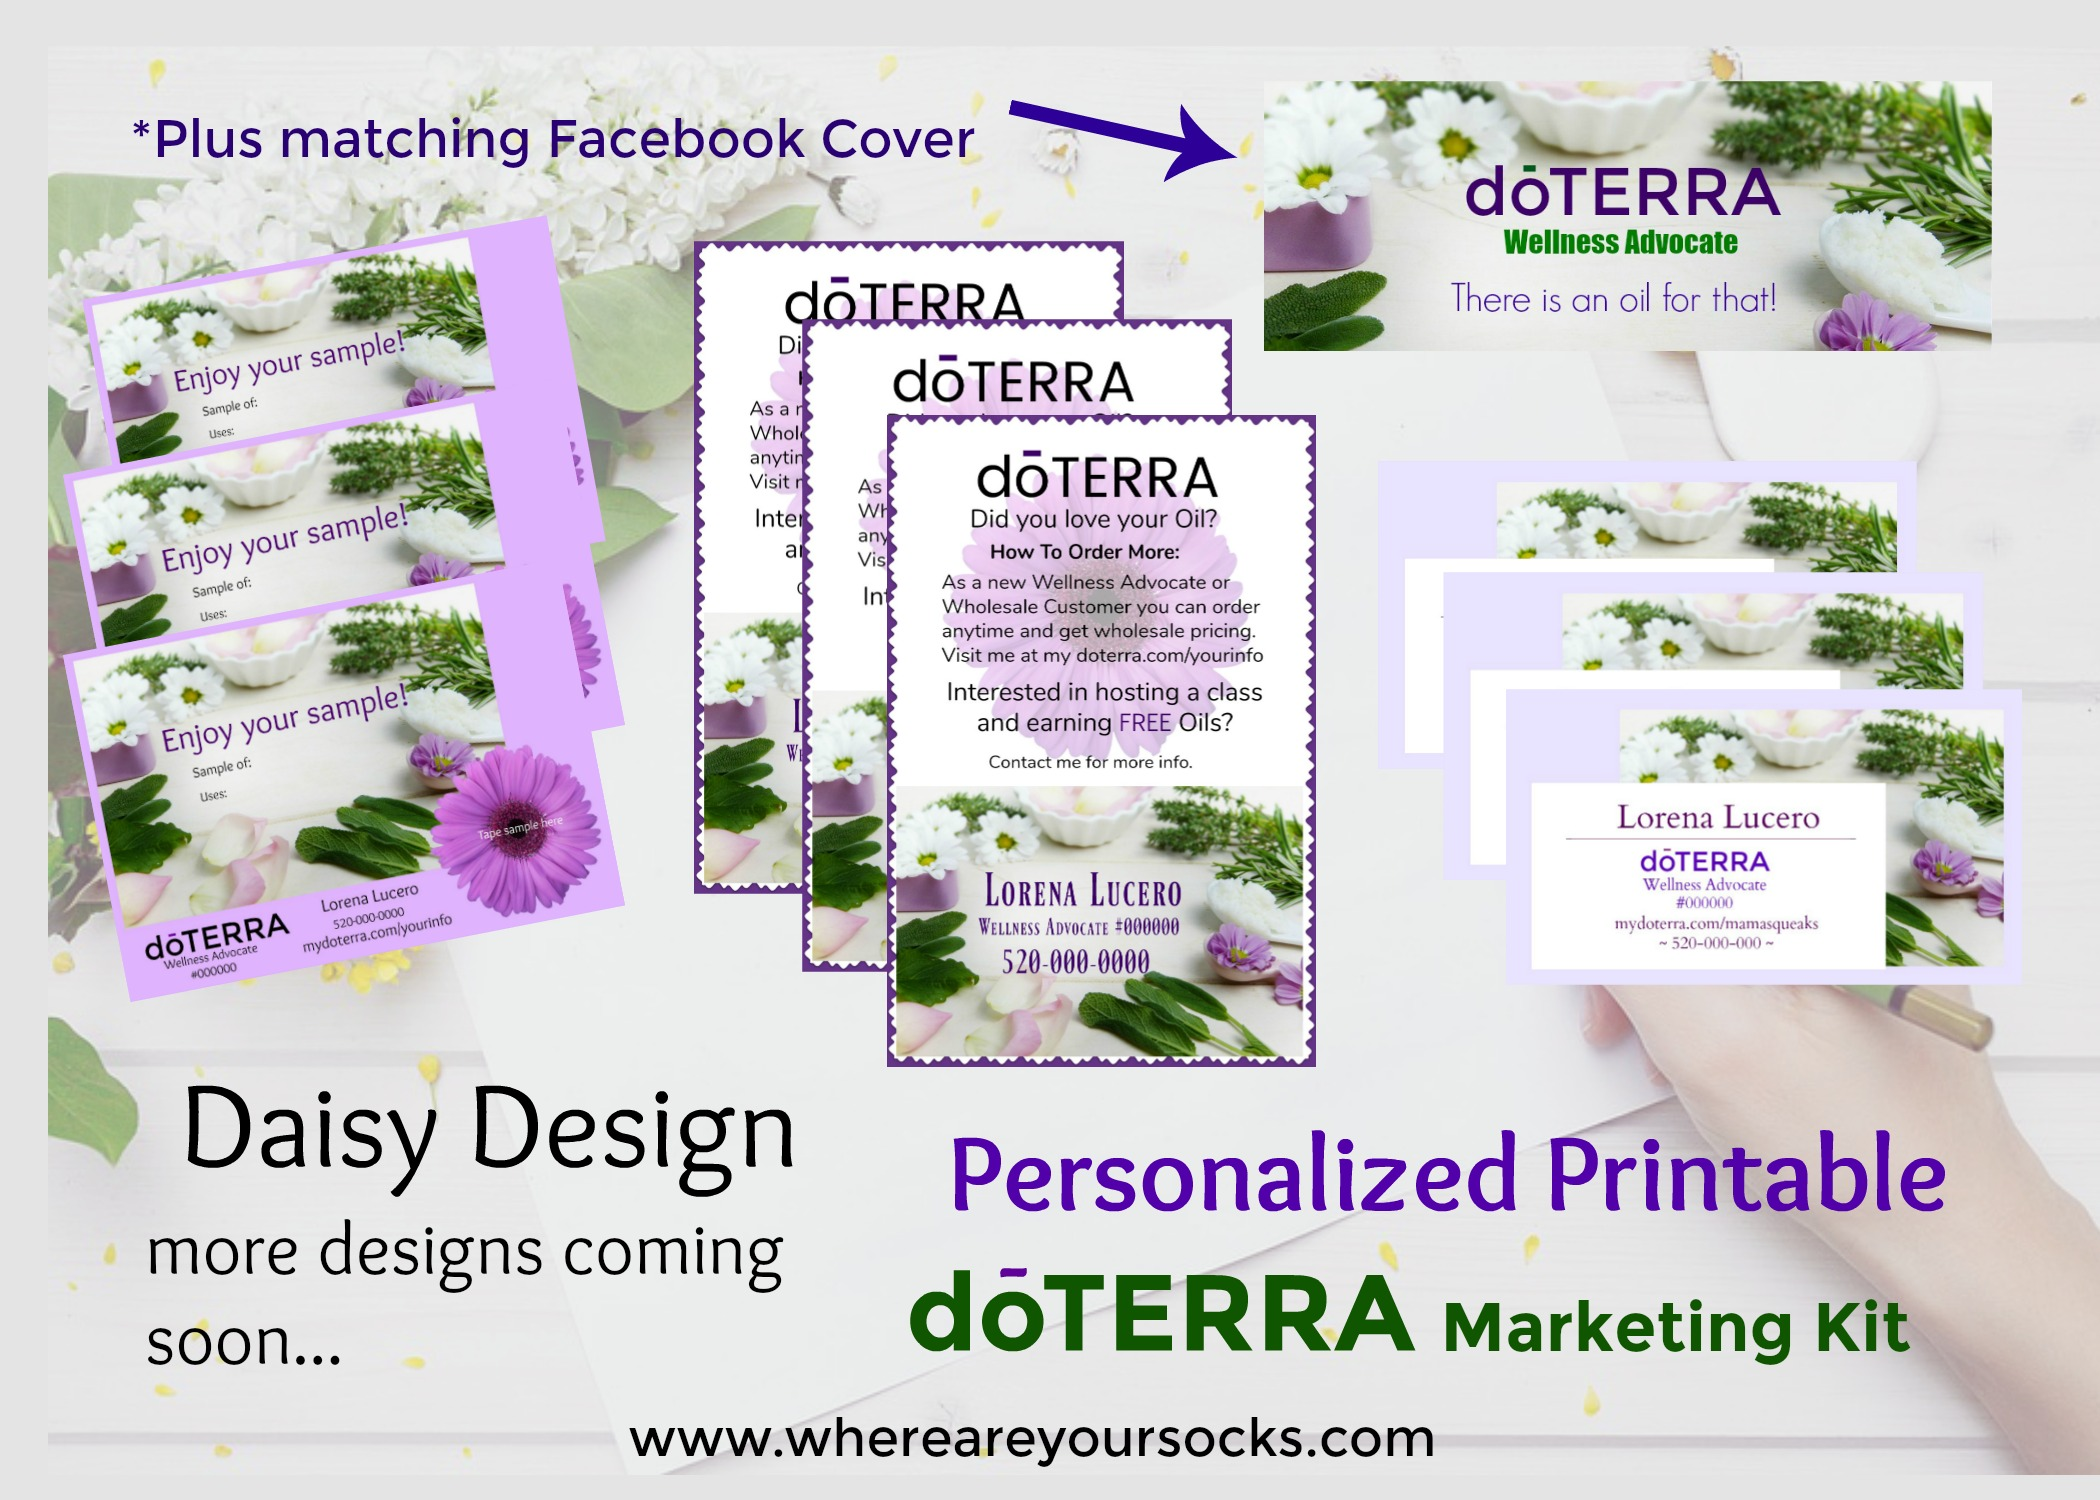 personalized printable marketing kit